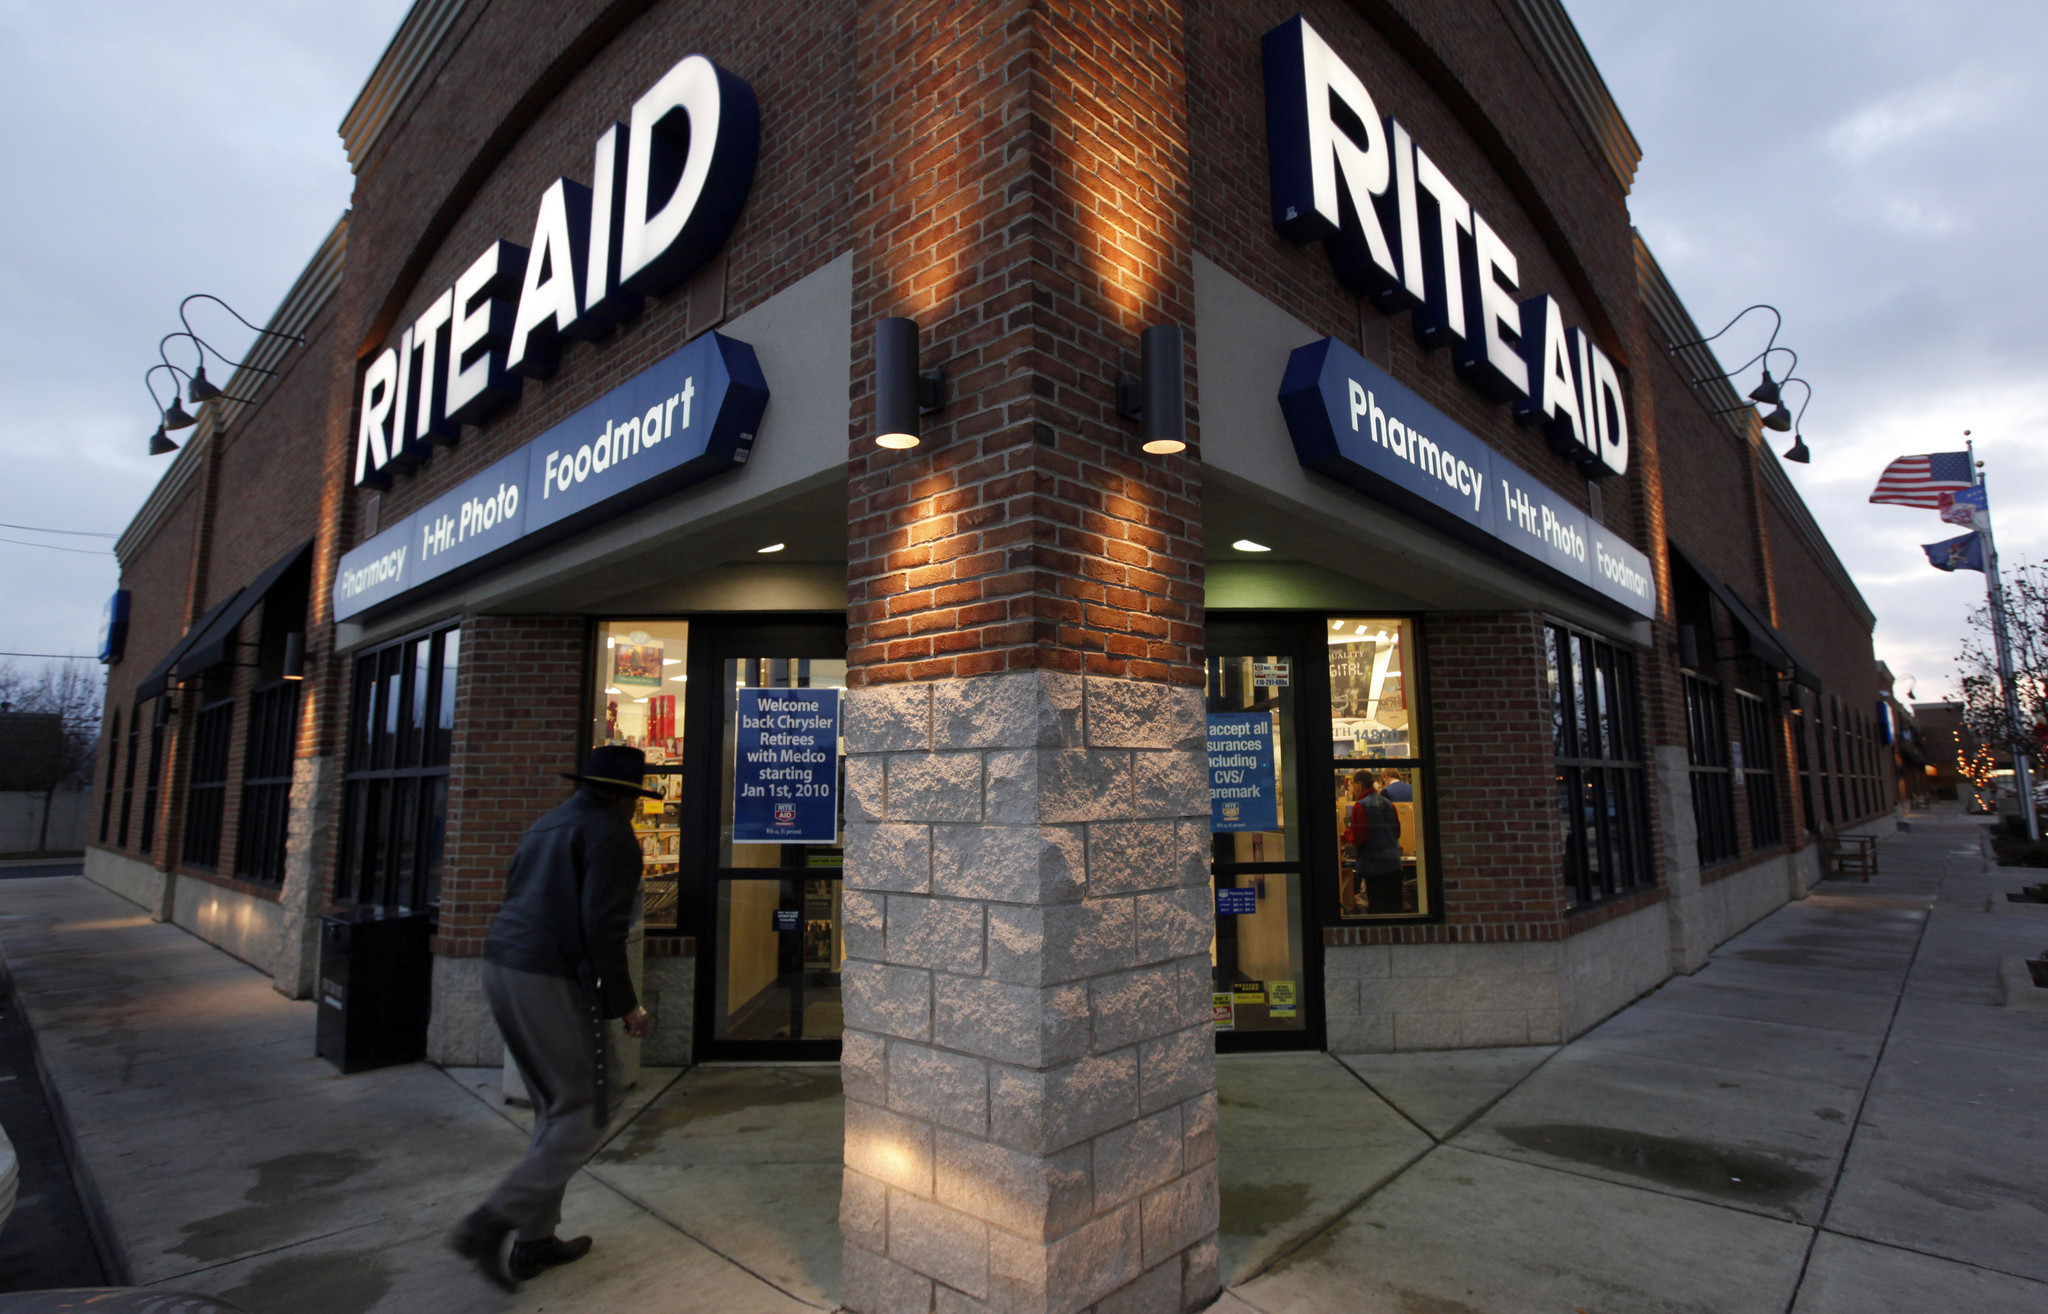 Walgreens' $4.4 billion deal to buy Rite Aid stores gets U.S. approval